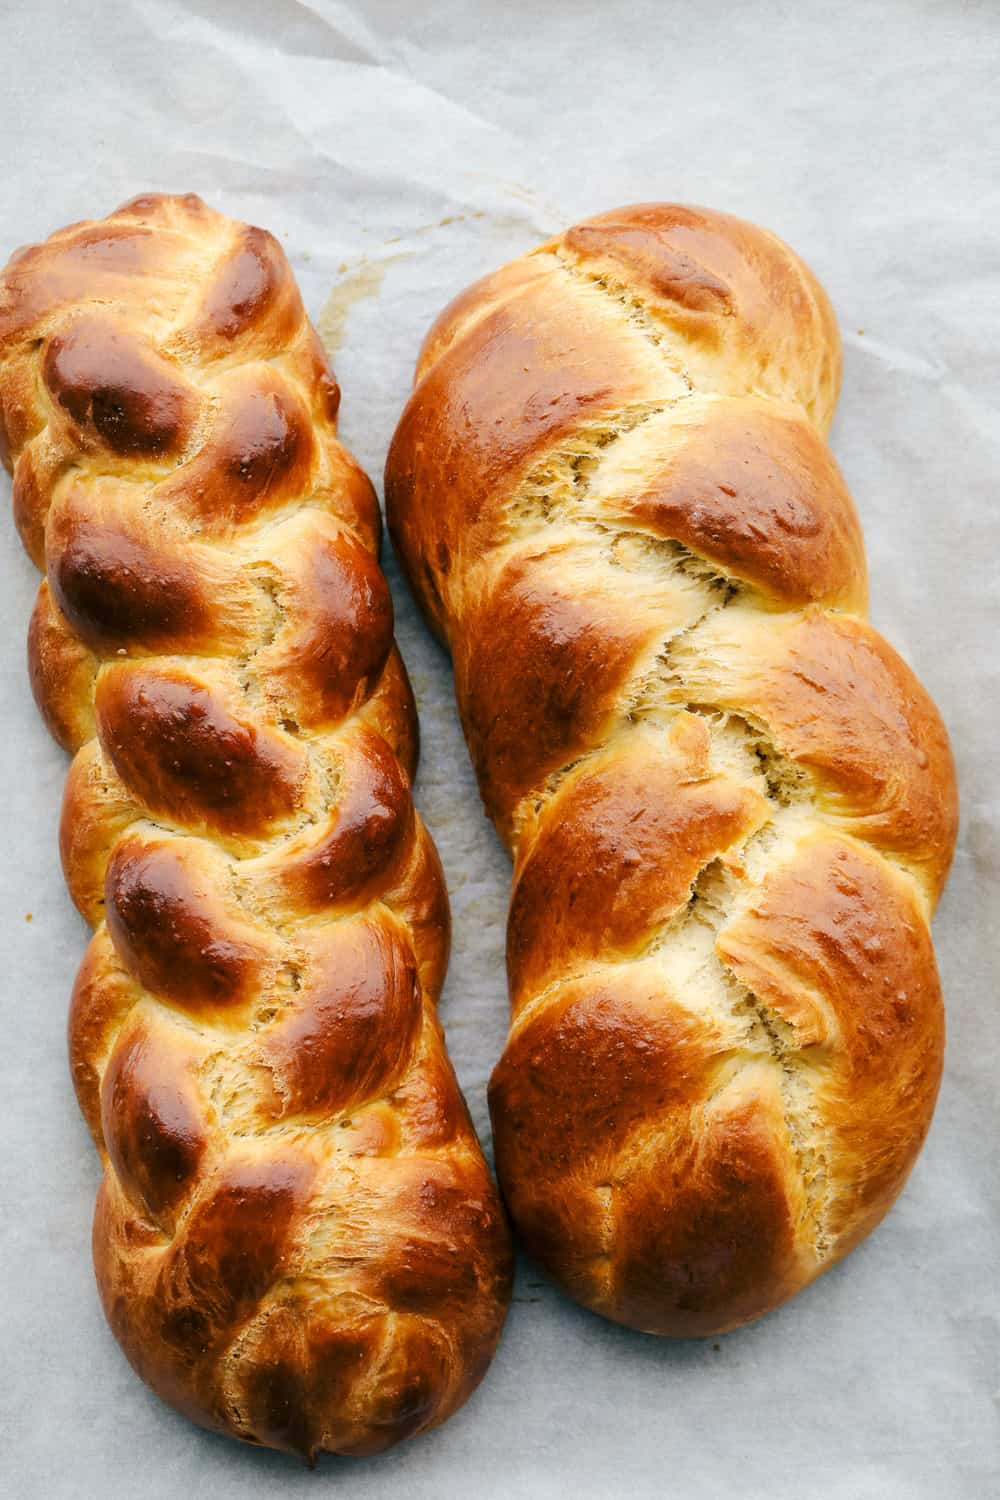 Baked six and three strand braided challah.